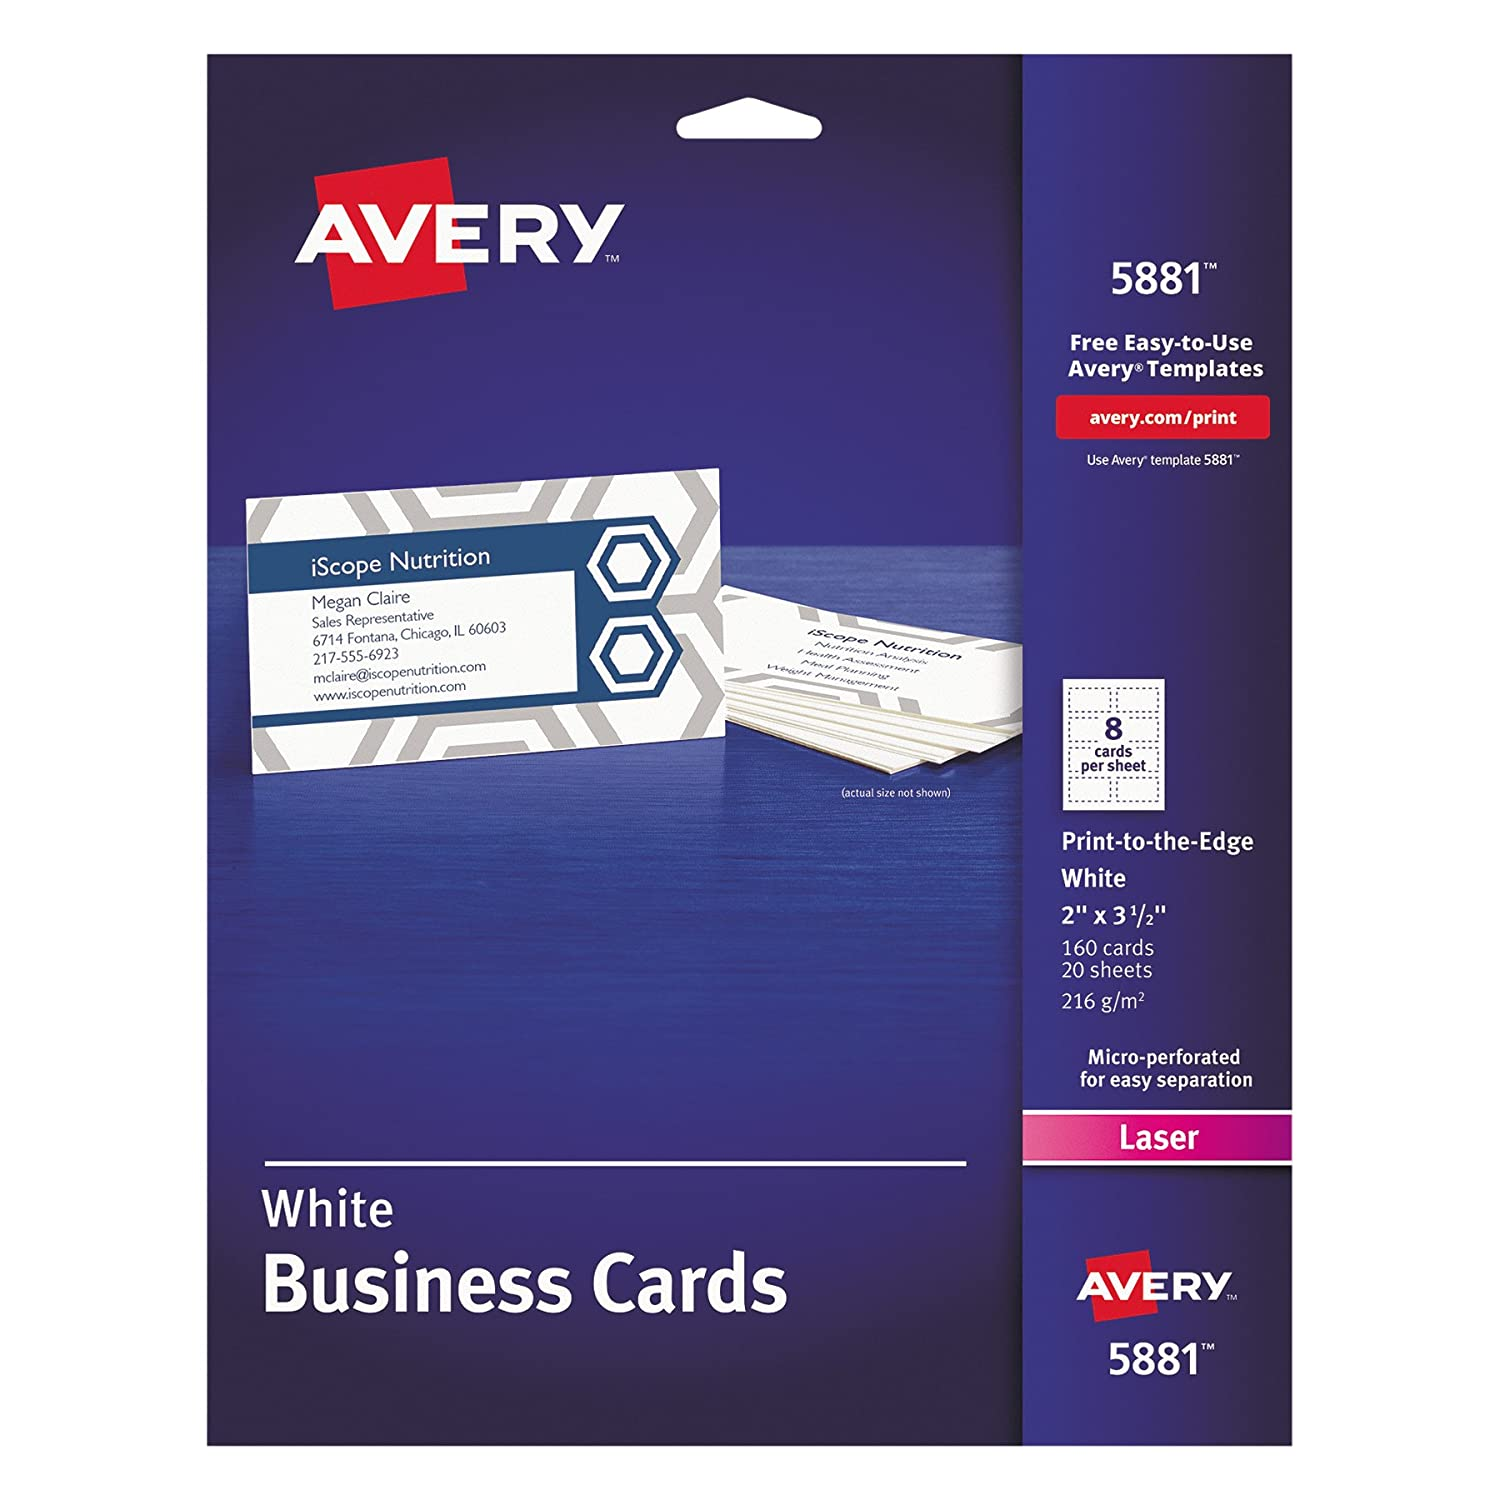 Amazon.com : Avery 5881 Print-to-the-Edge Microperf Business Cards ...